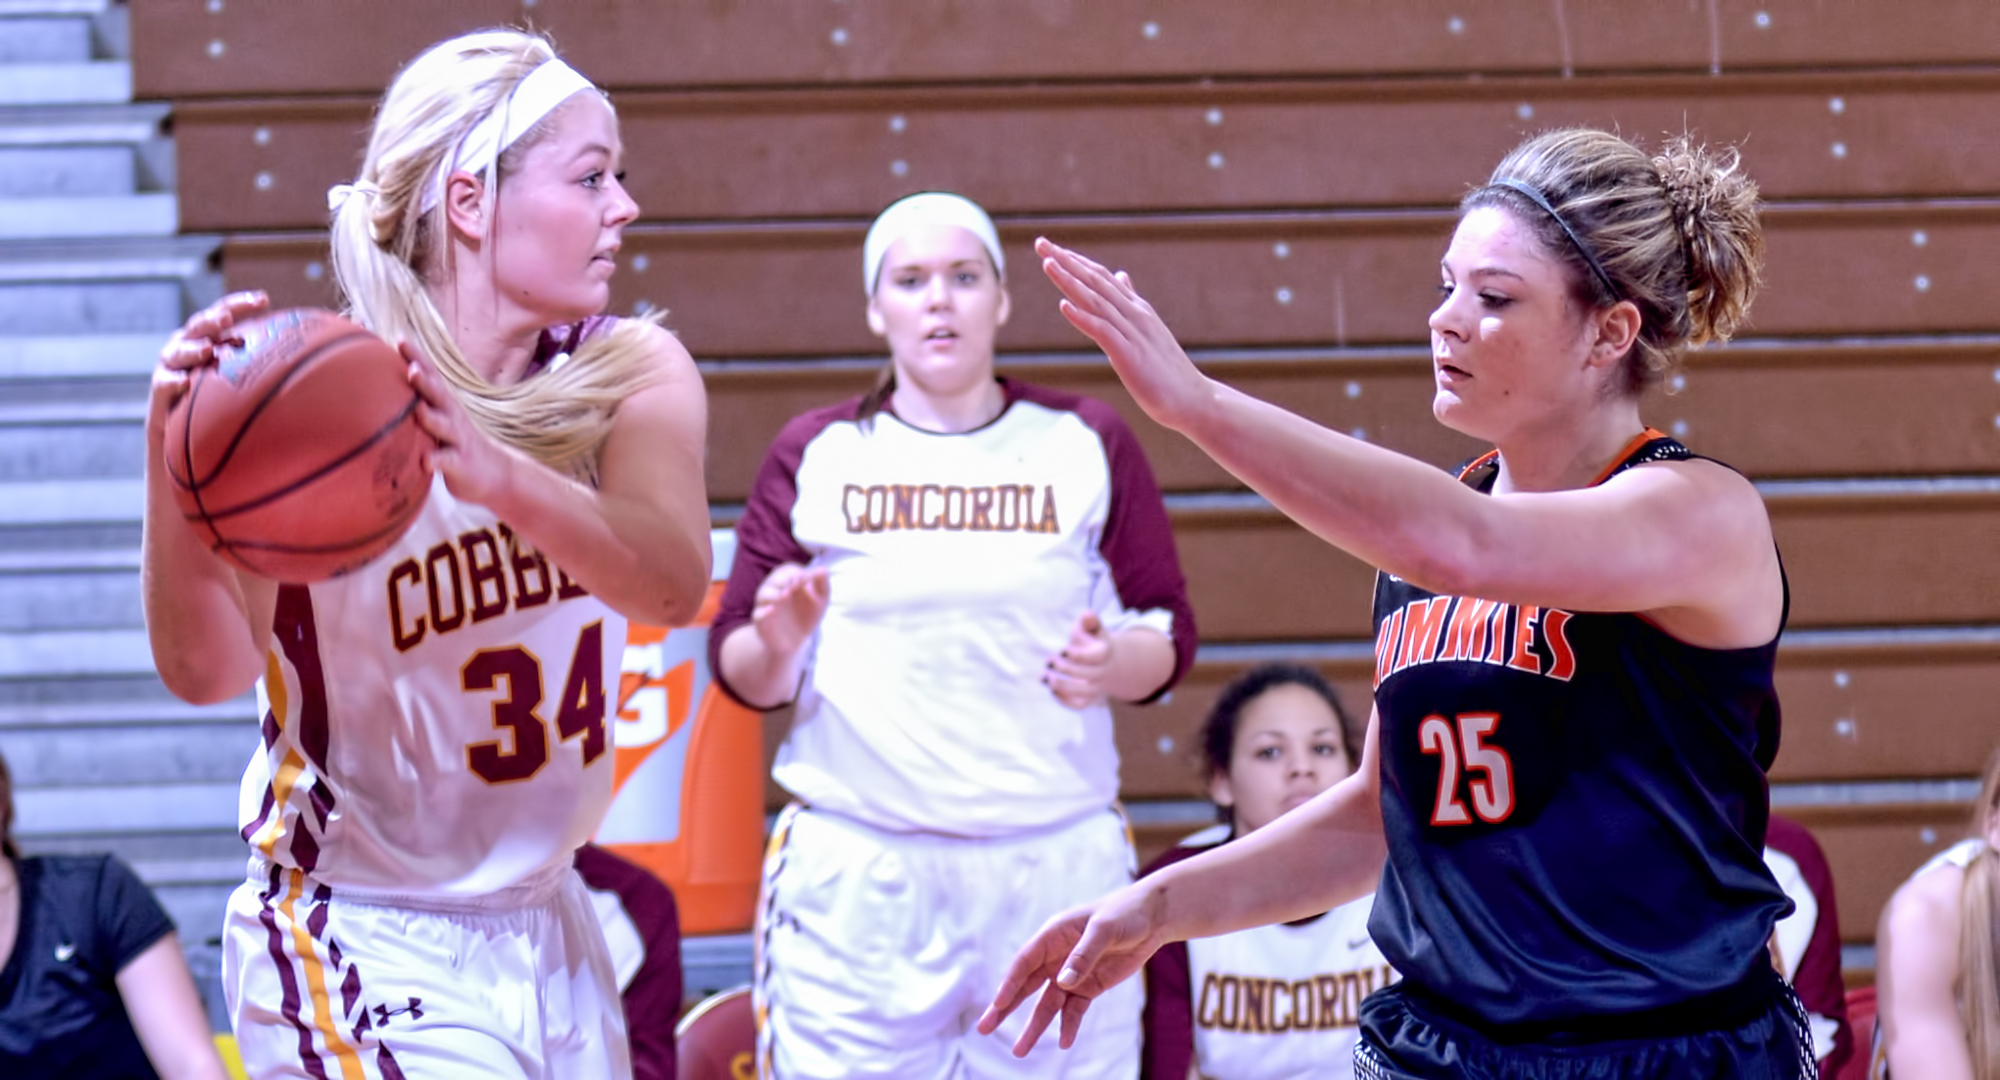 Junior Grace Wolhowe led the Cobbers in scoring and rebounding in Concordia's game at Jamestown. Wolhowe had a career-high 14 points vs. the Jimmies.